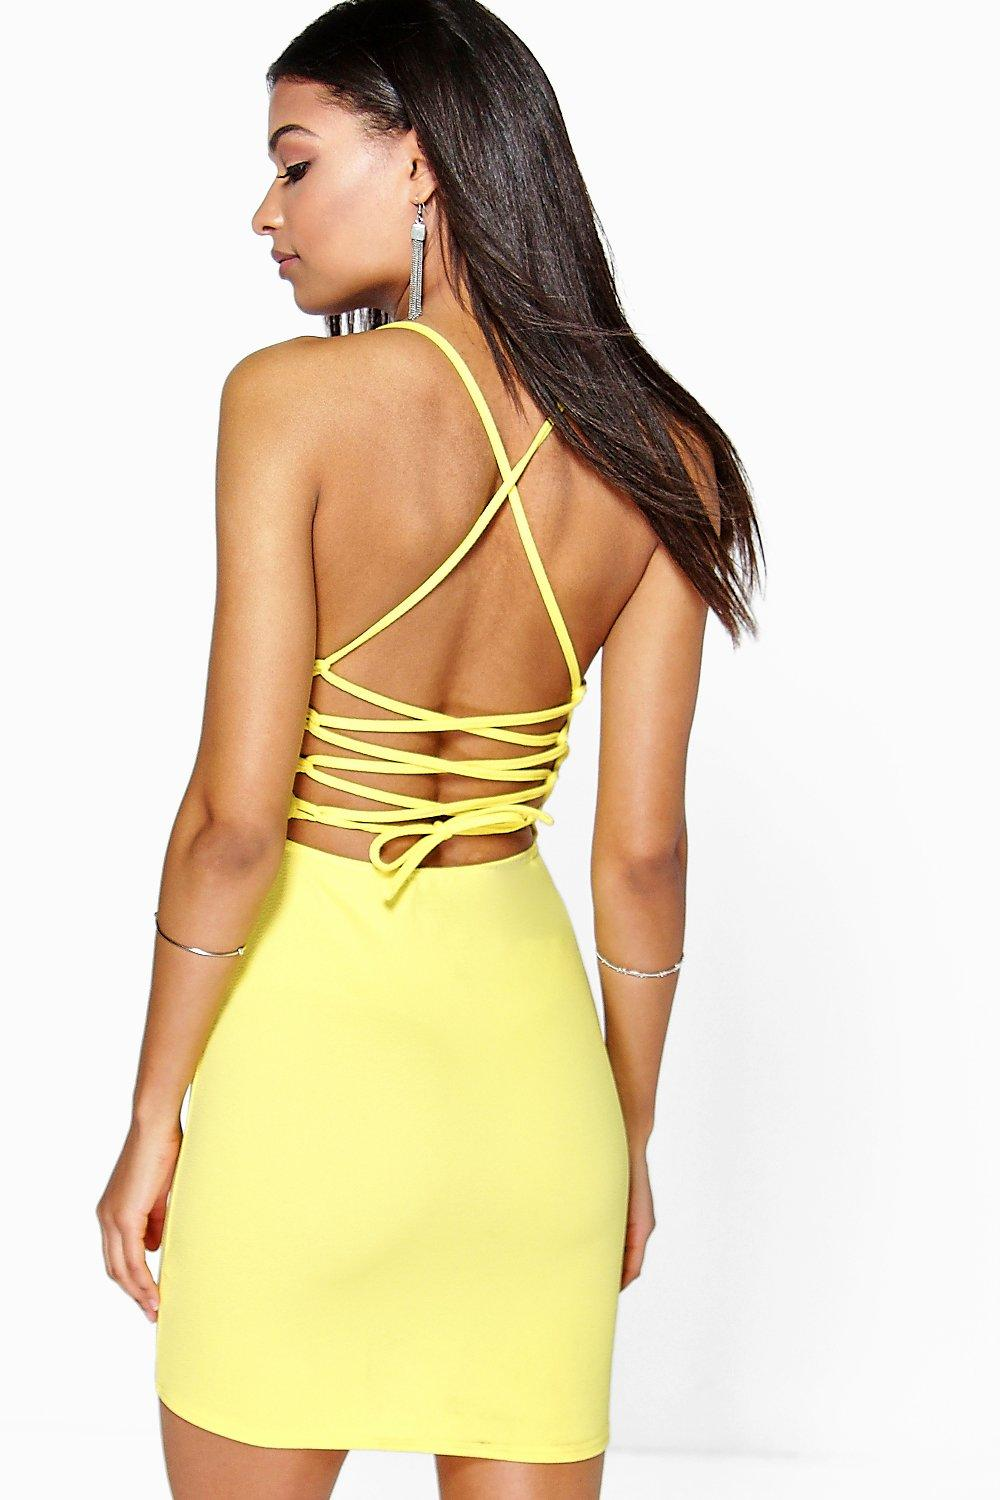 Dresses that lace up in the back